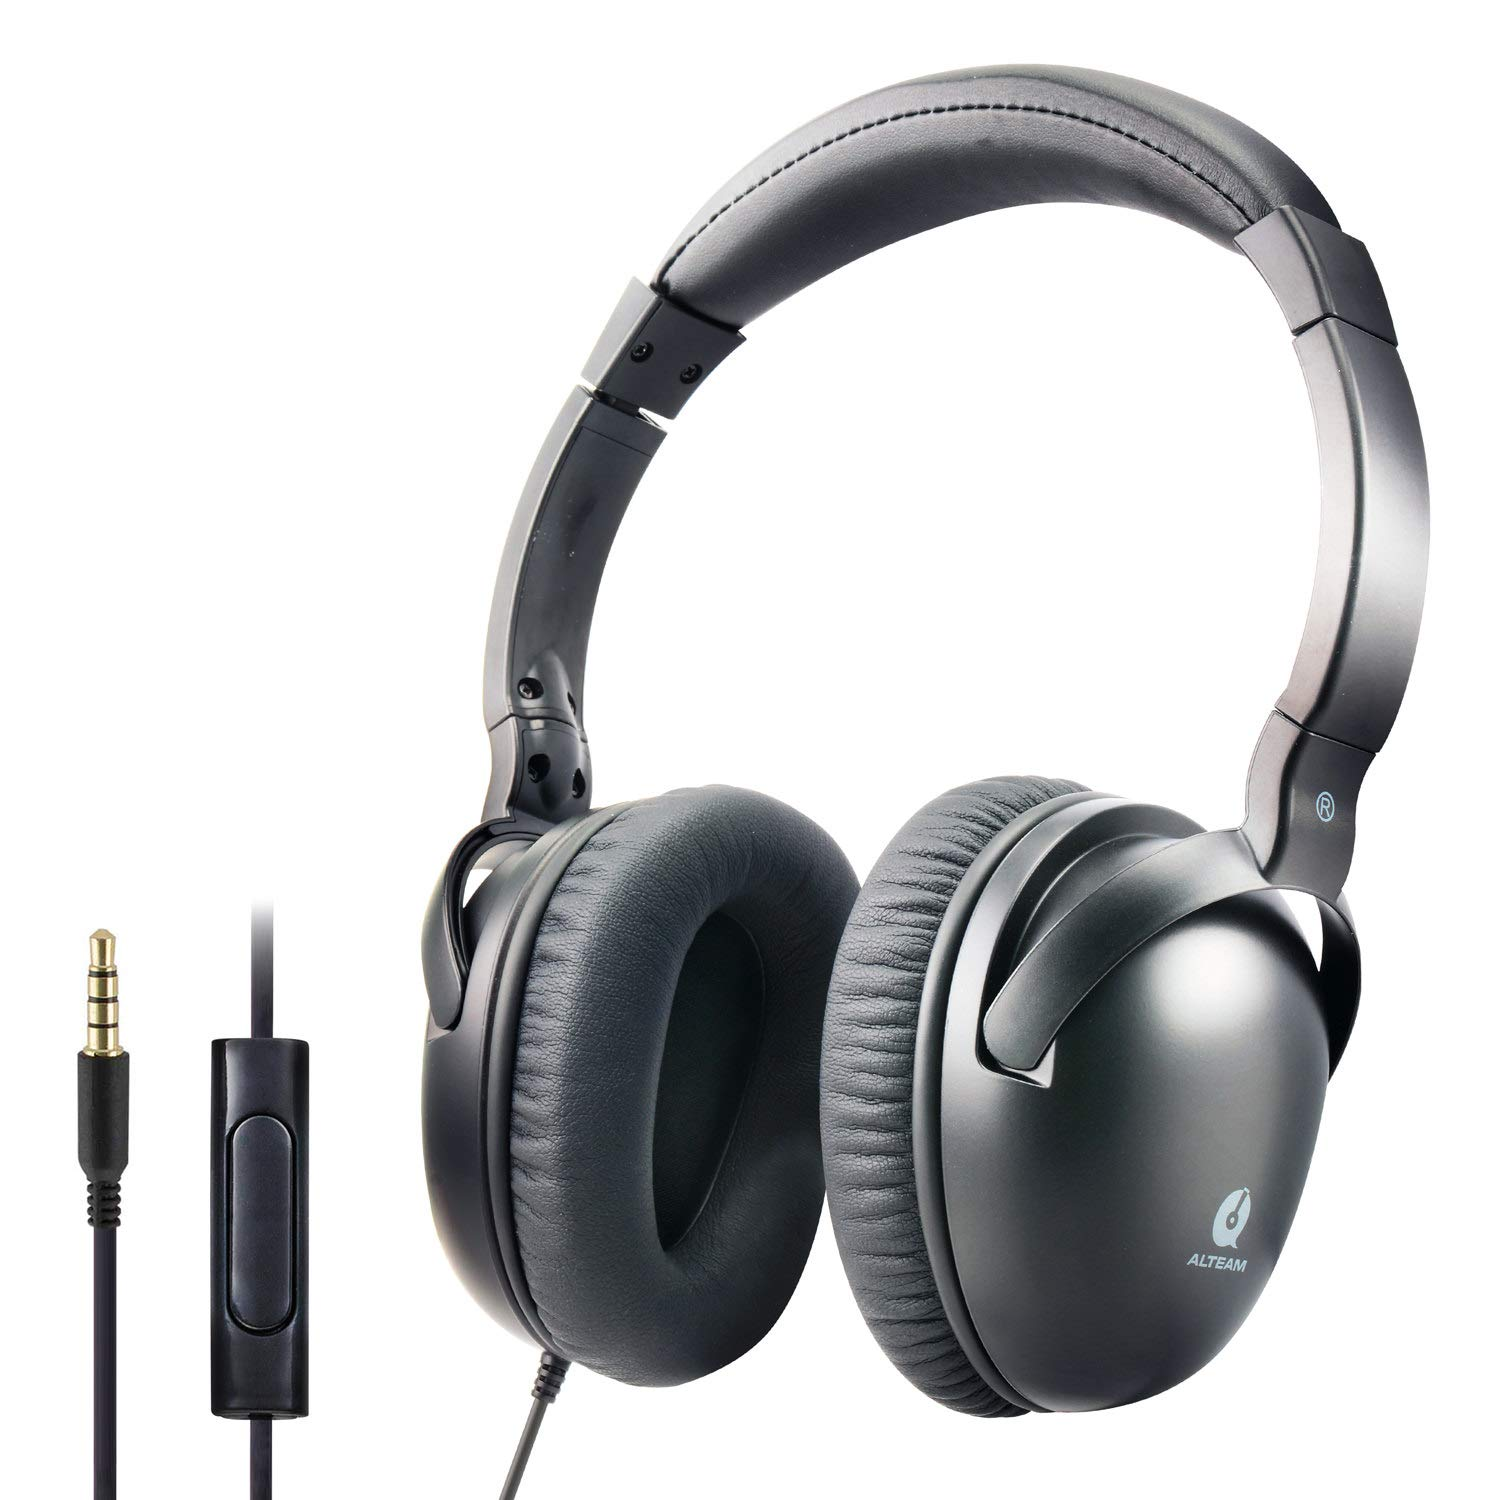 Auriculares ALTEAM Con Cable Over-Ear Confortable Headset con Mic para Music y Calls 3.5mm Plug Flexible Stainless Steel